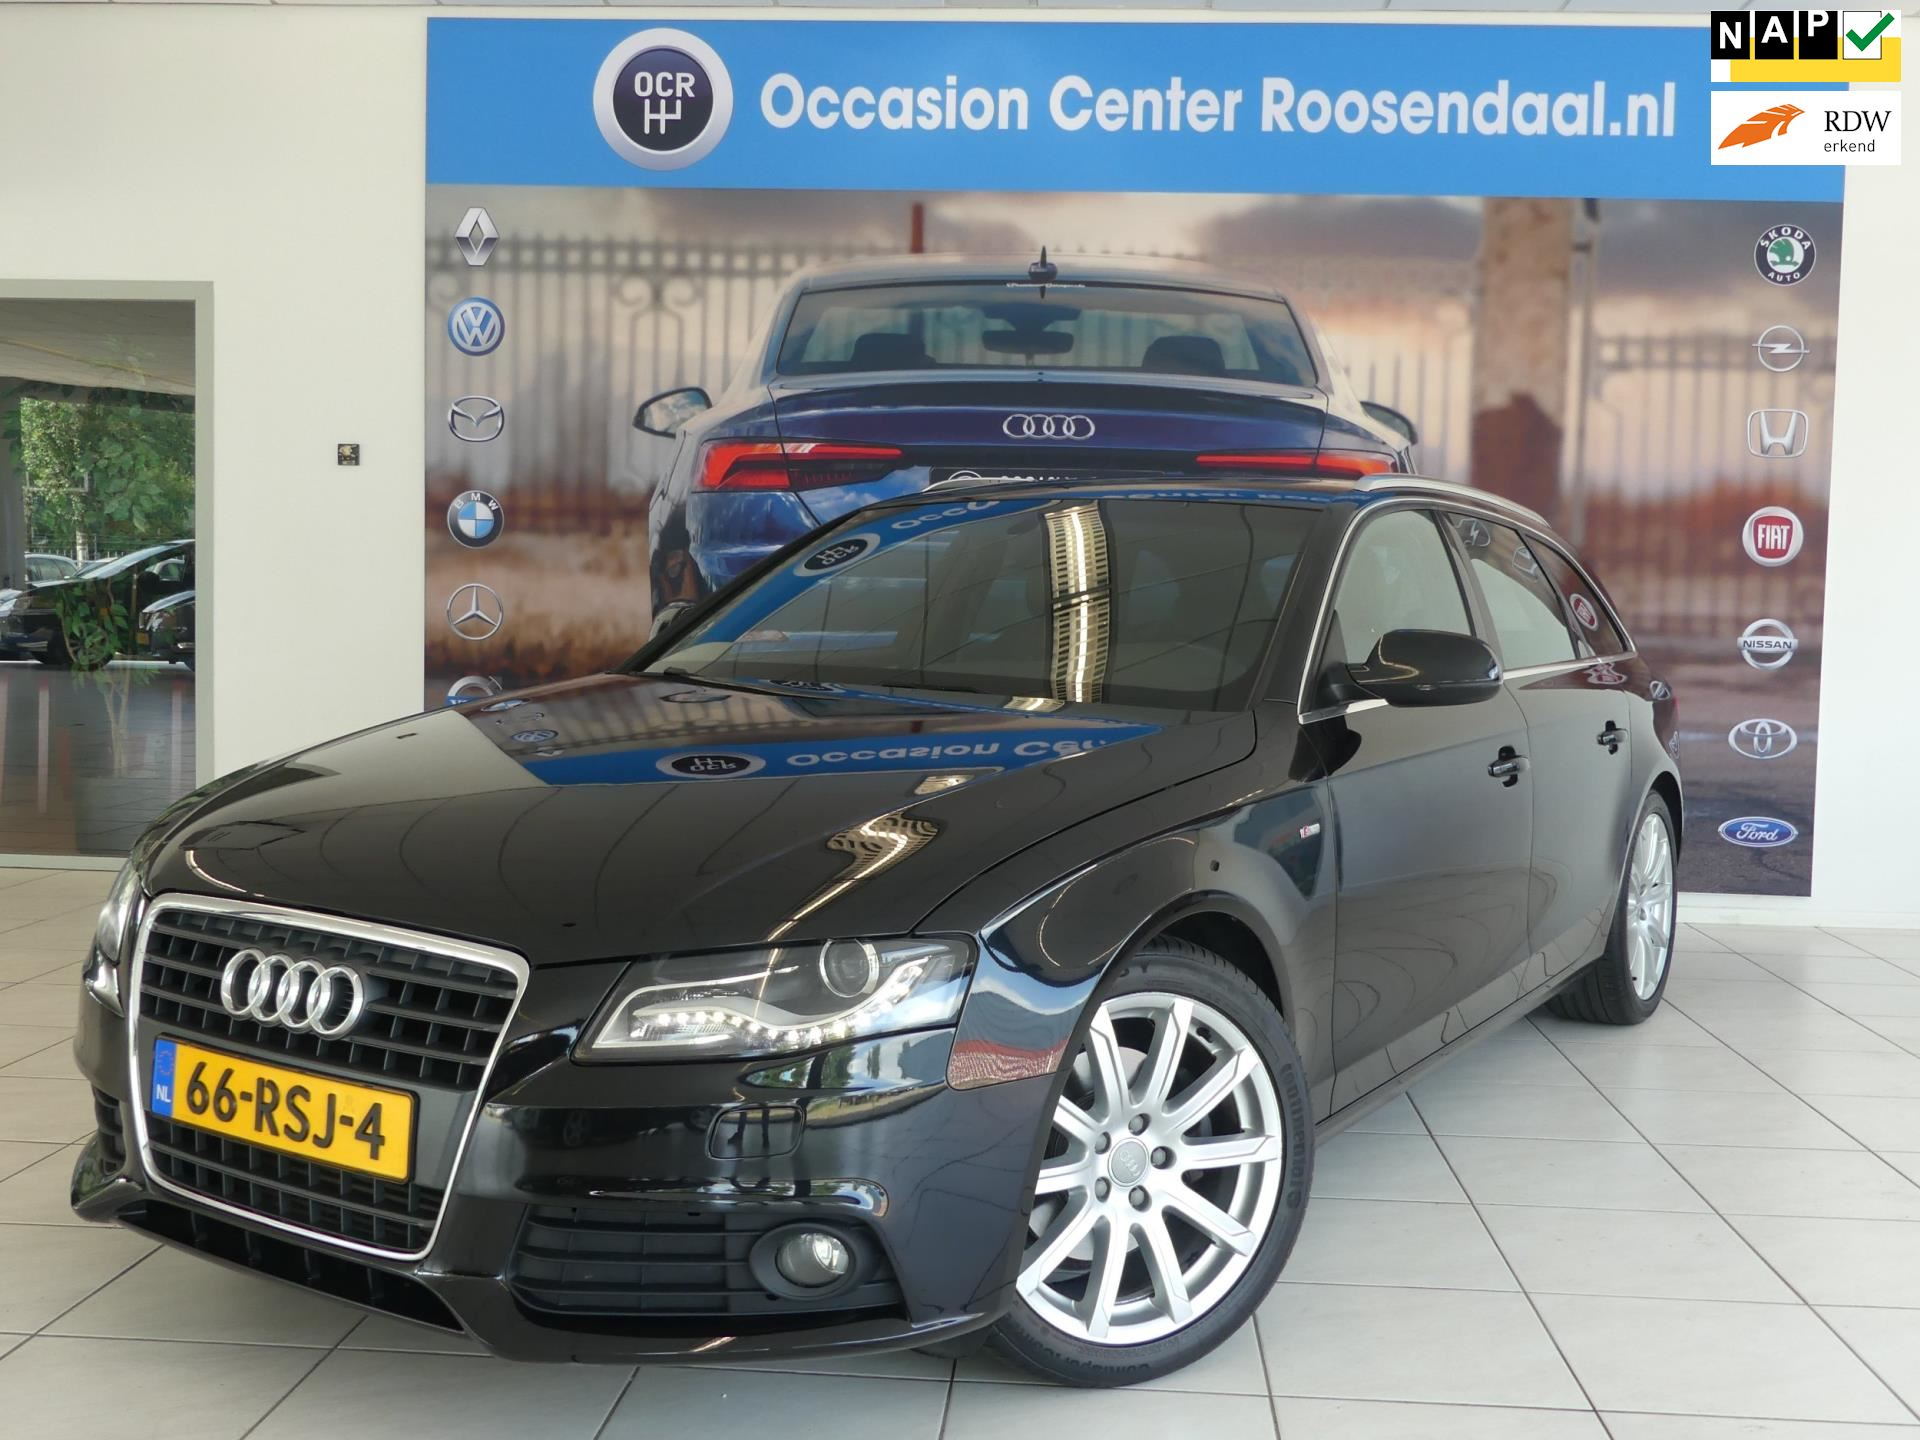 Audi A4 Avant occasion - Occasion Center Roosendaal